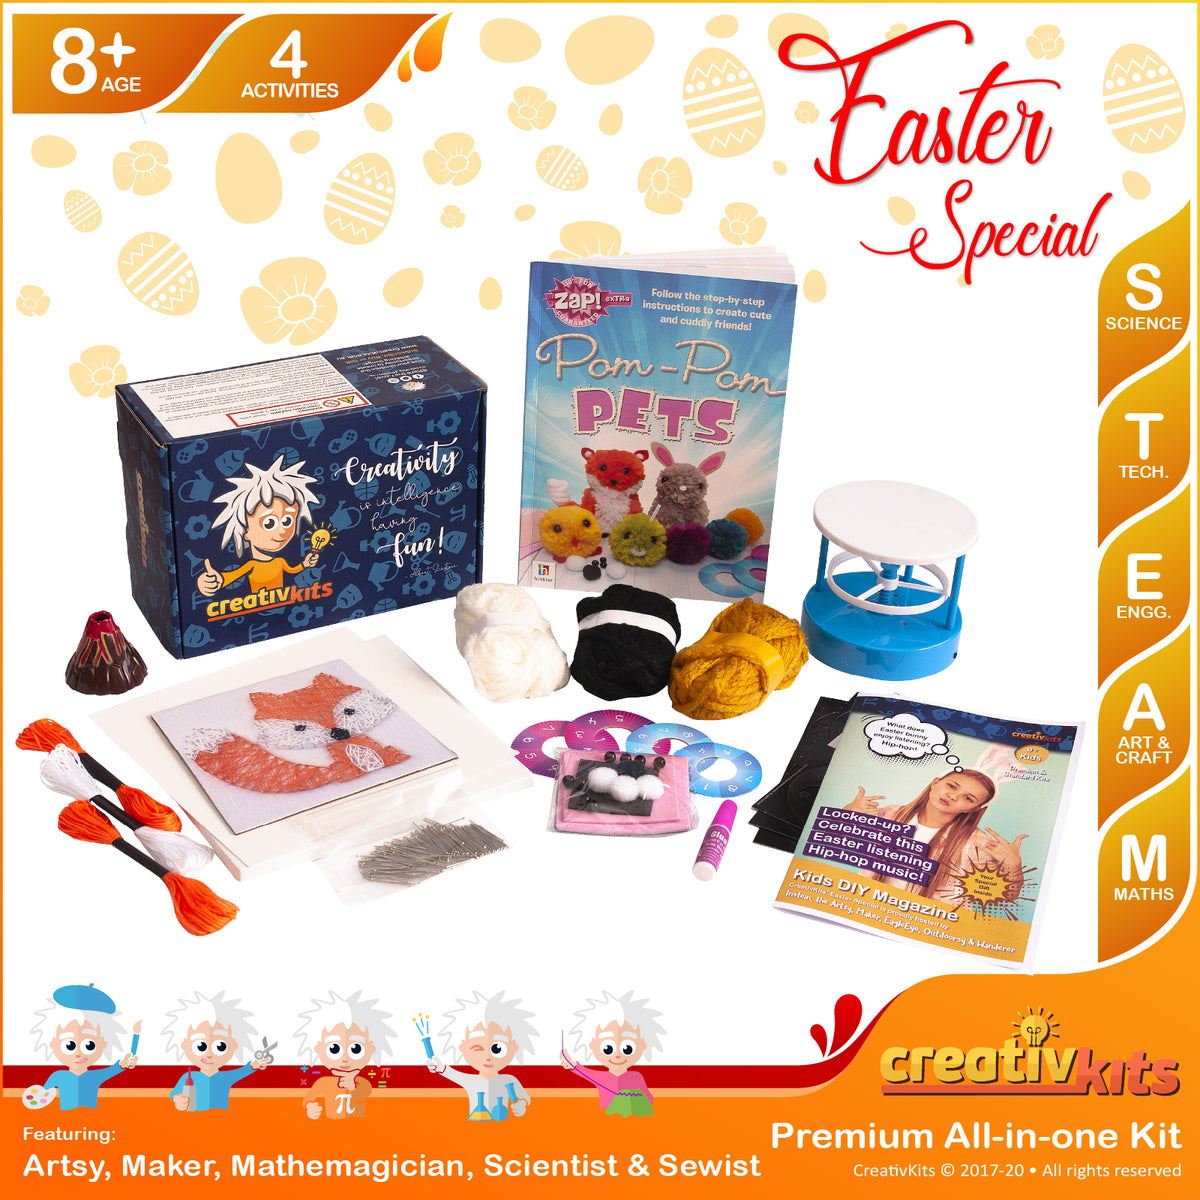 March Plus Kit • Age 8 plus • DIY Light Kaleidoscope, String Art, Explode Volcano & Pom Pom Pets